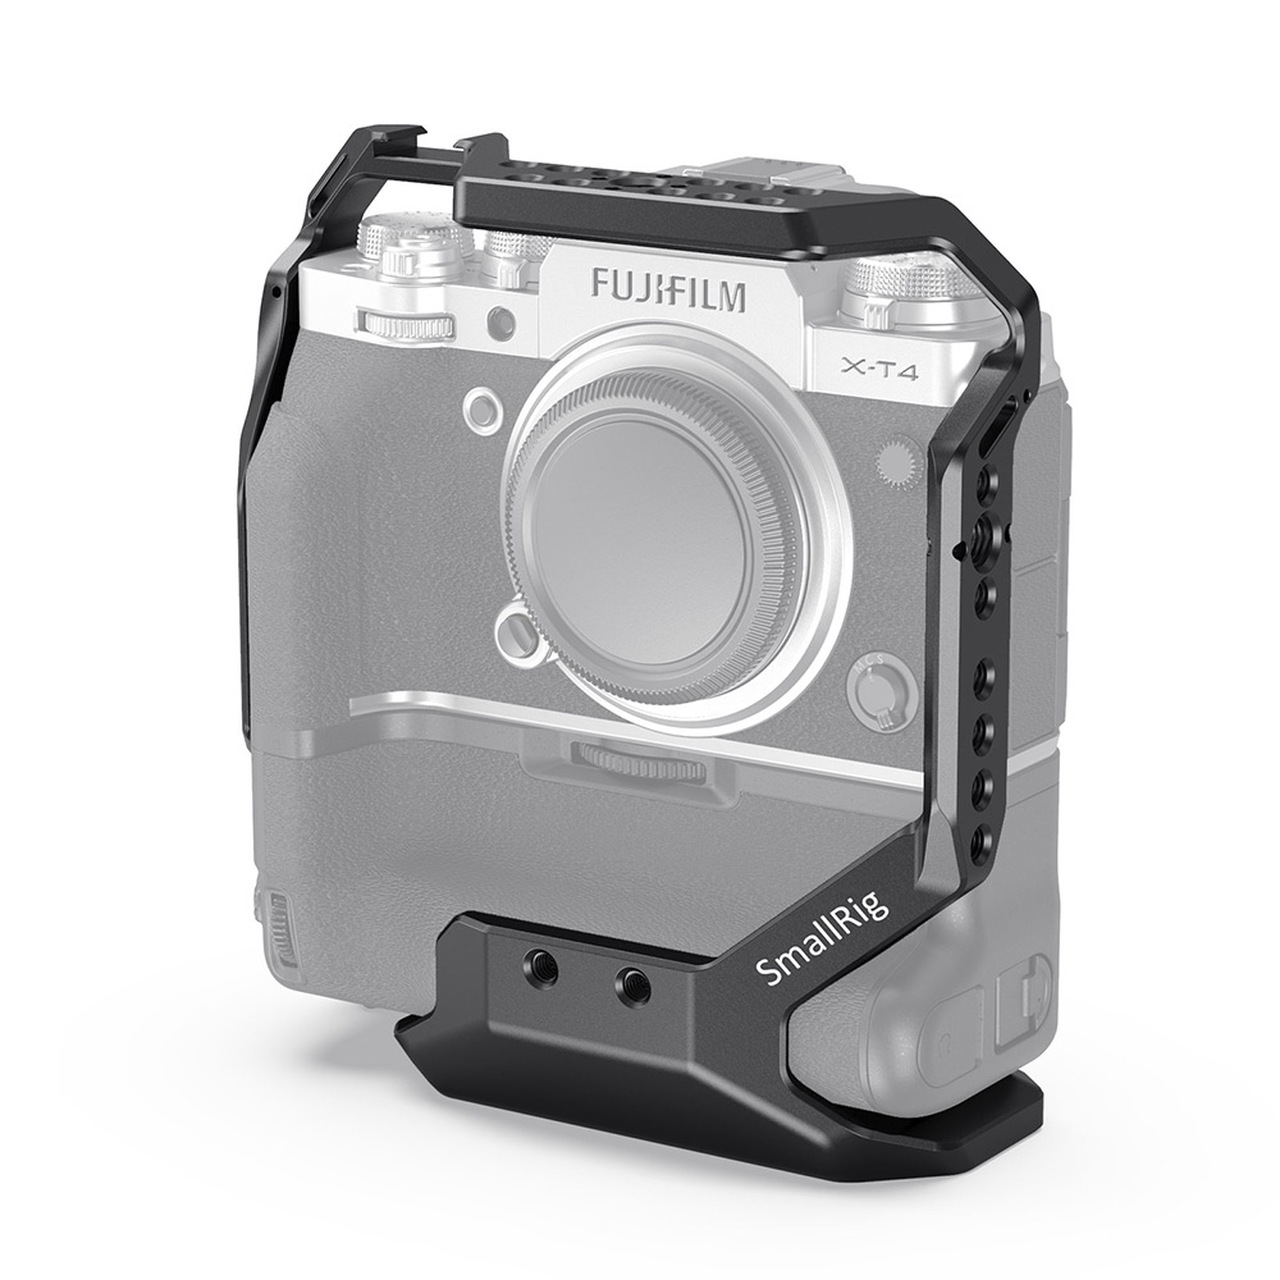 SmallRig Cage for FUJIFILM X-T4 with VG-XT4 Vertical Battery Grip CCF2810 Cages & Accessories Cages & Accessories